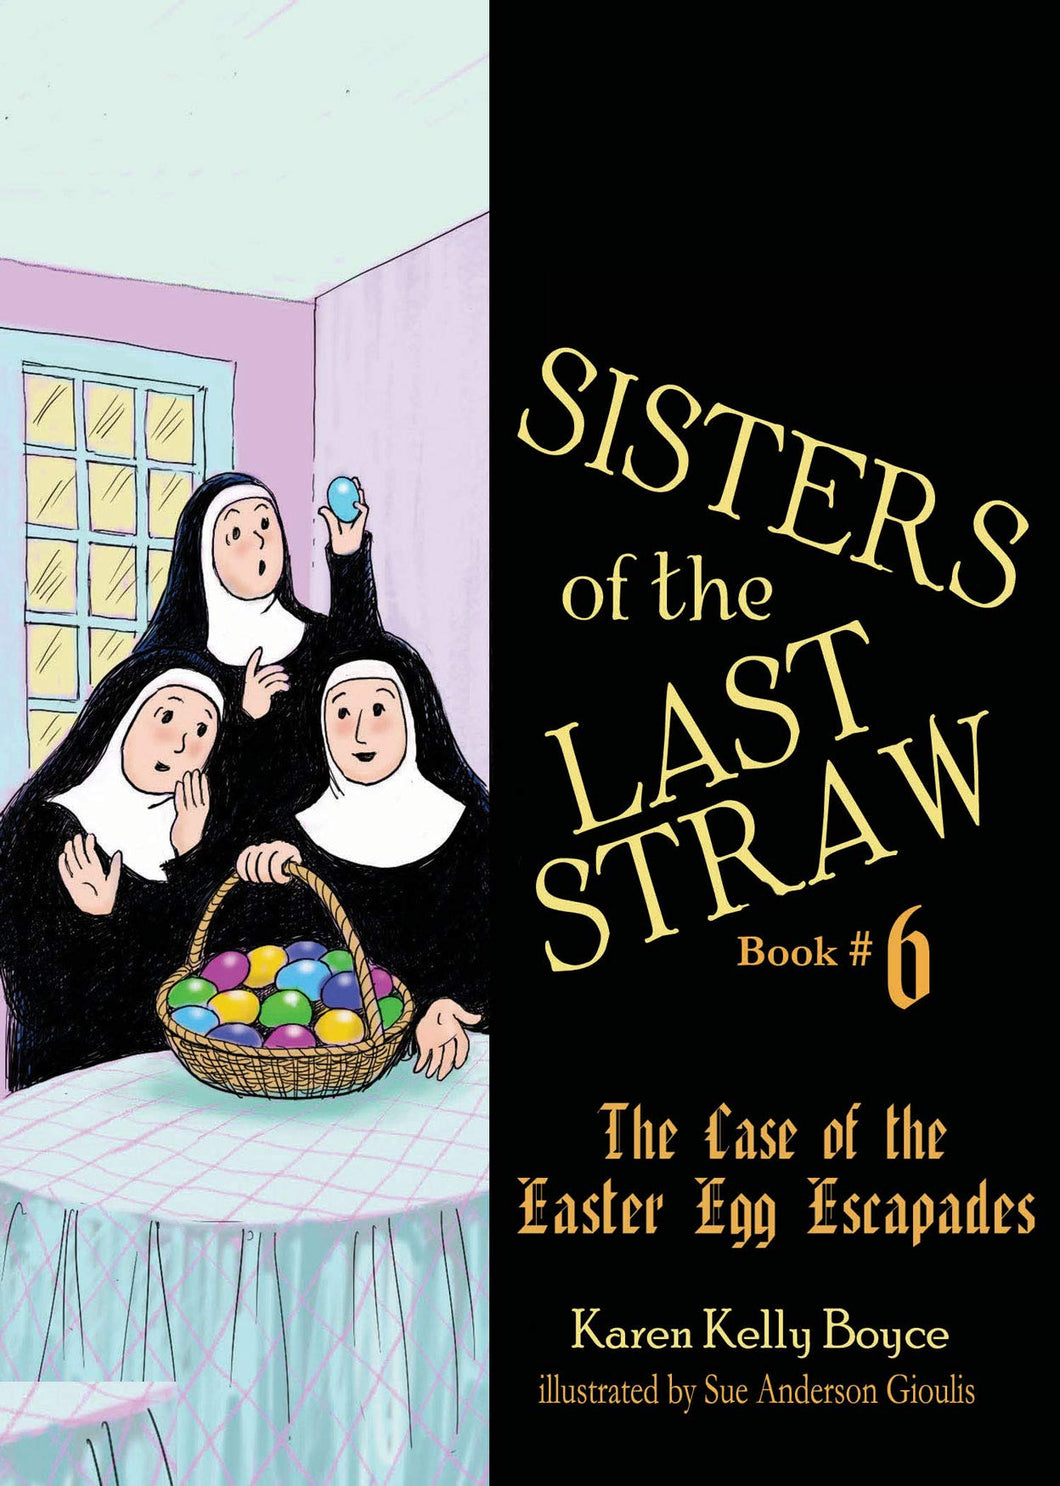 Sisters of the Last Straw Vol 6: The Case of the Easter Egg Escapades